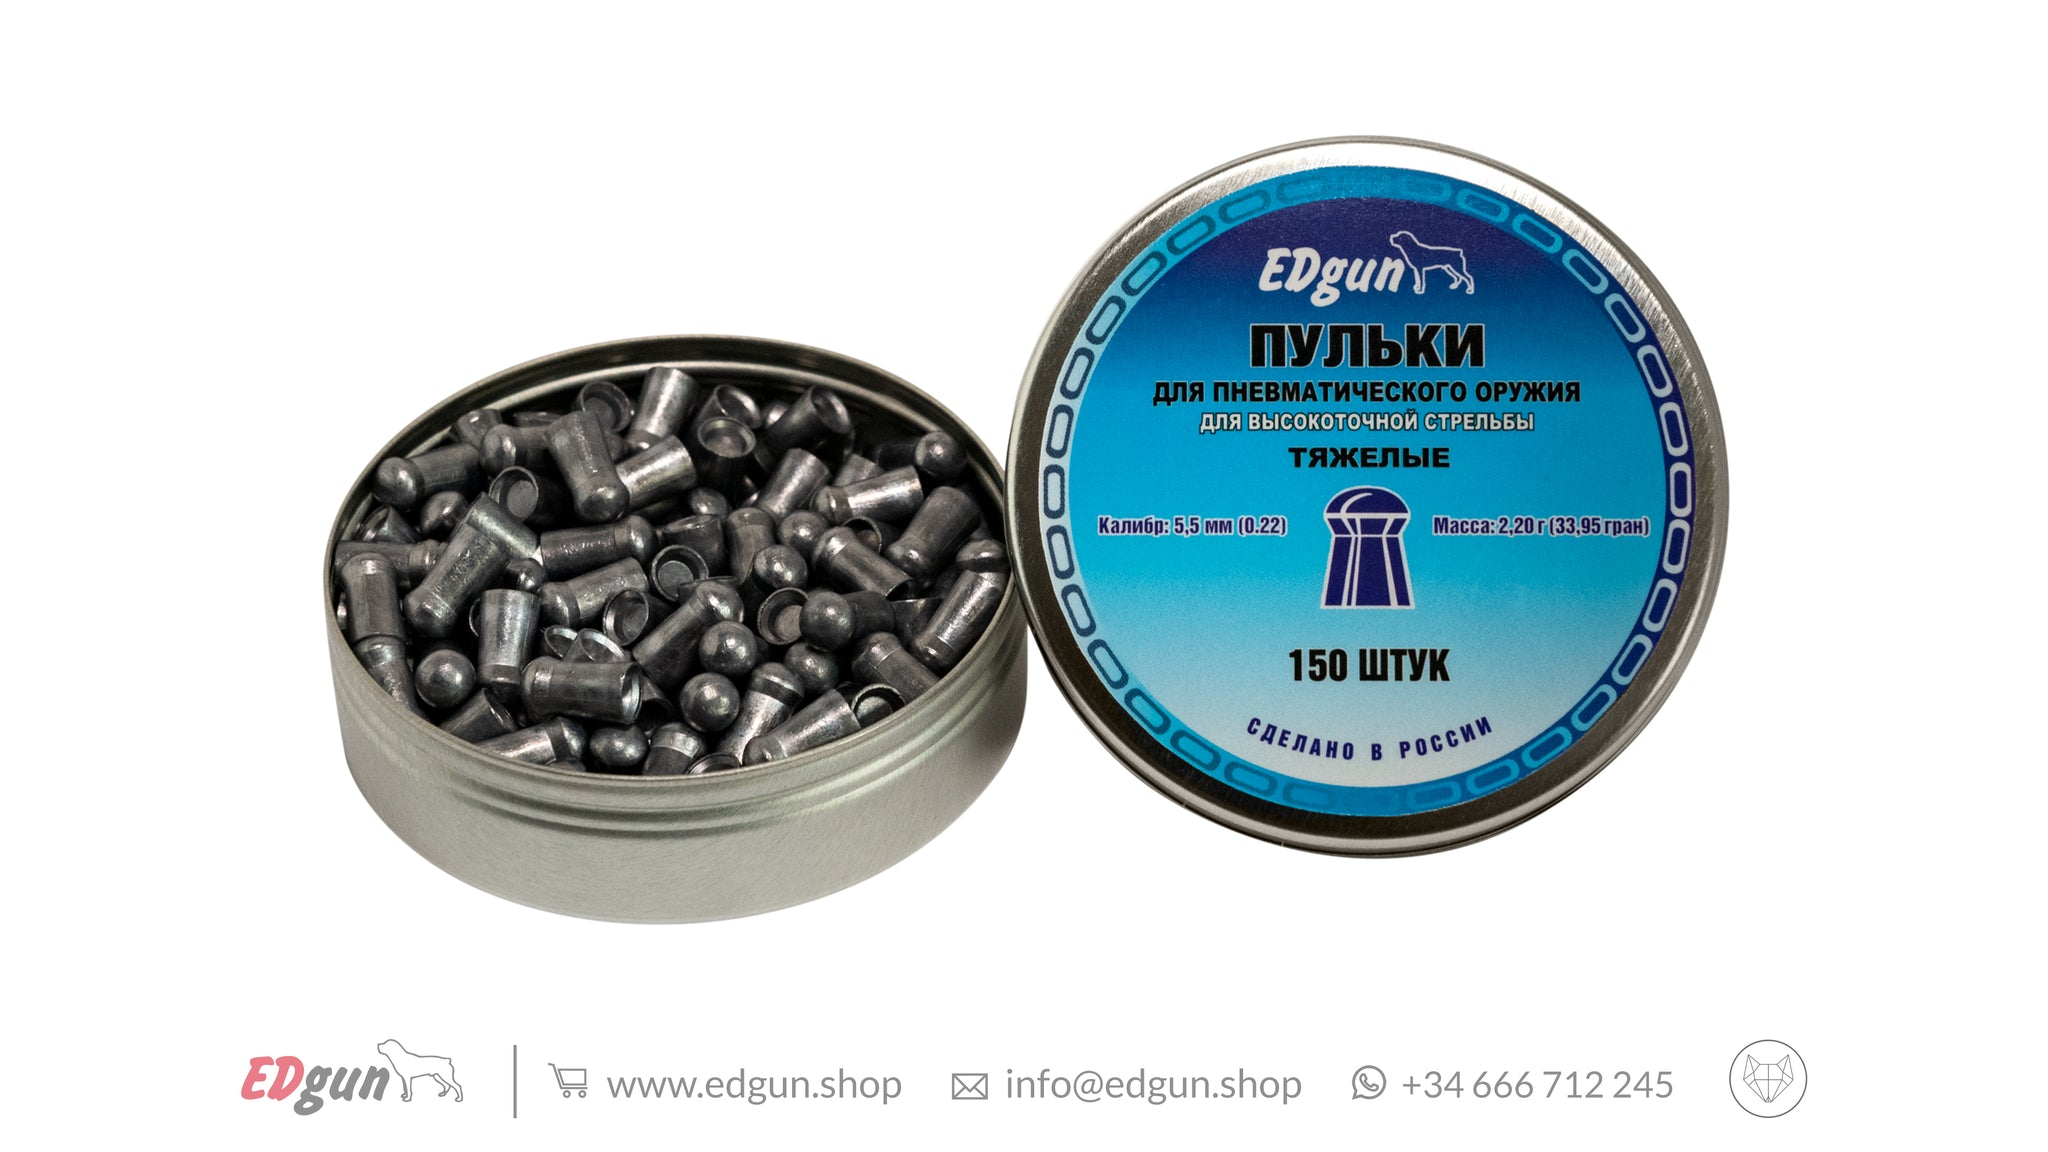 EDgun Premium Beast Pellets<br> Caliber .22 (5,52 mm) · Weight 2,20g (33,95gr)